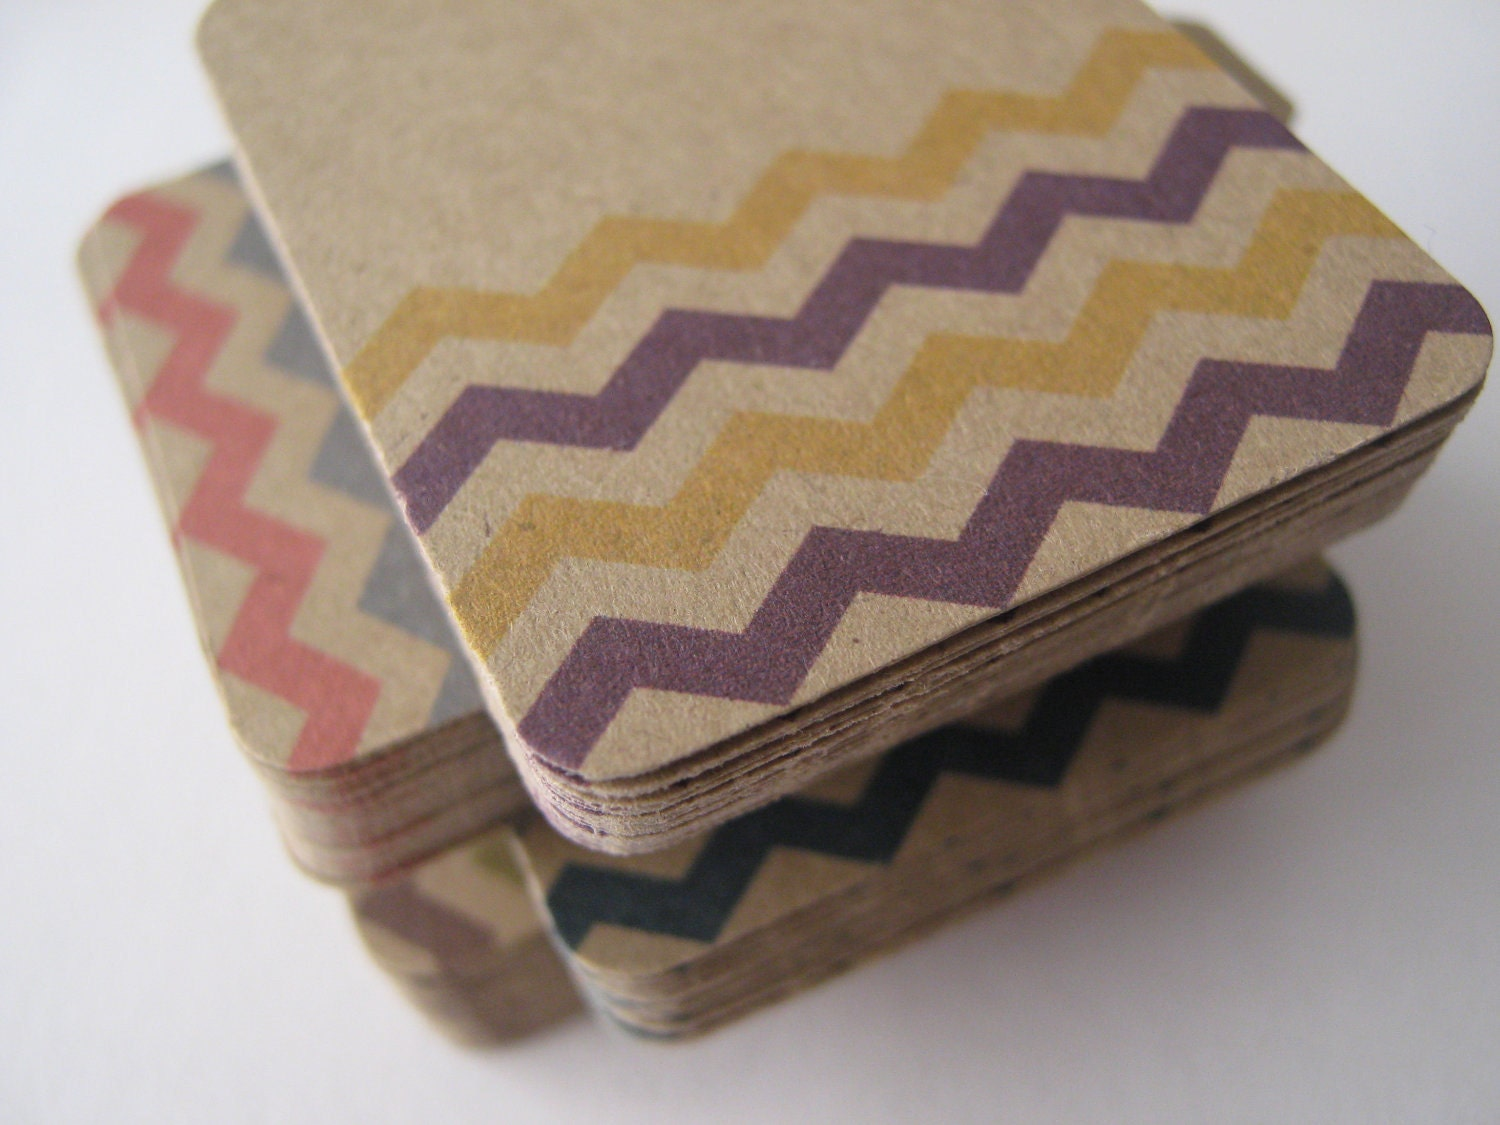 Kraft Brown Chevron Retail Swing Tags Spring 2012 Pantone Colors - Set of 50